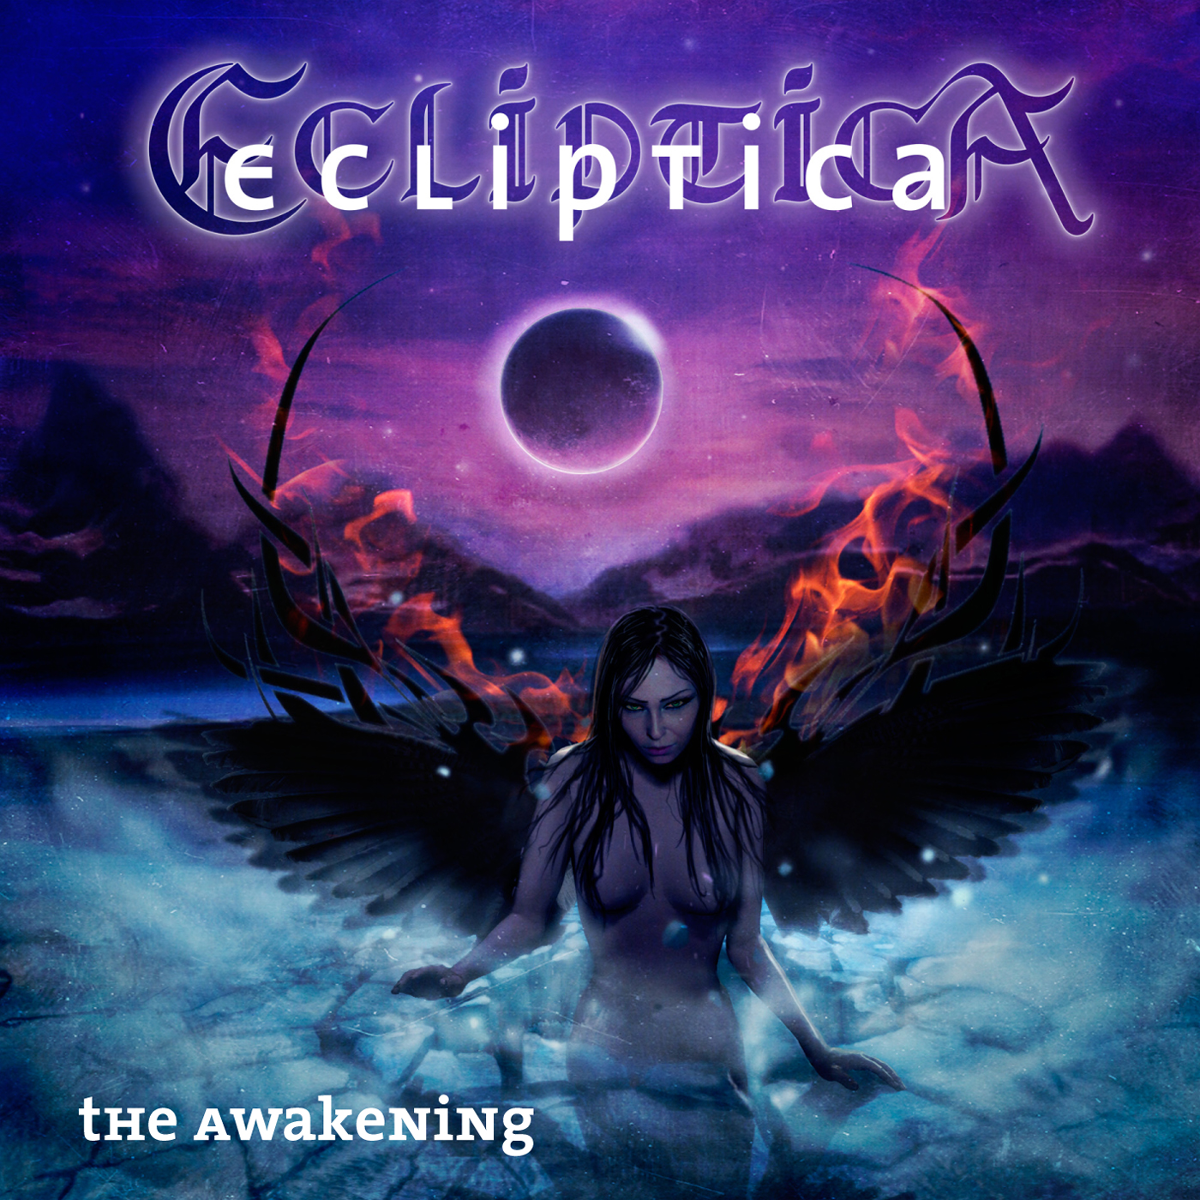 ECLIPTICA - The Awakening Re-Release // EP, 2017/05/12 // MMP011 // EAN: 9008798233489